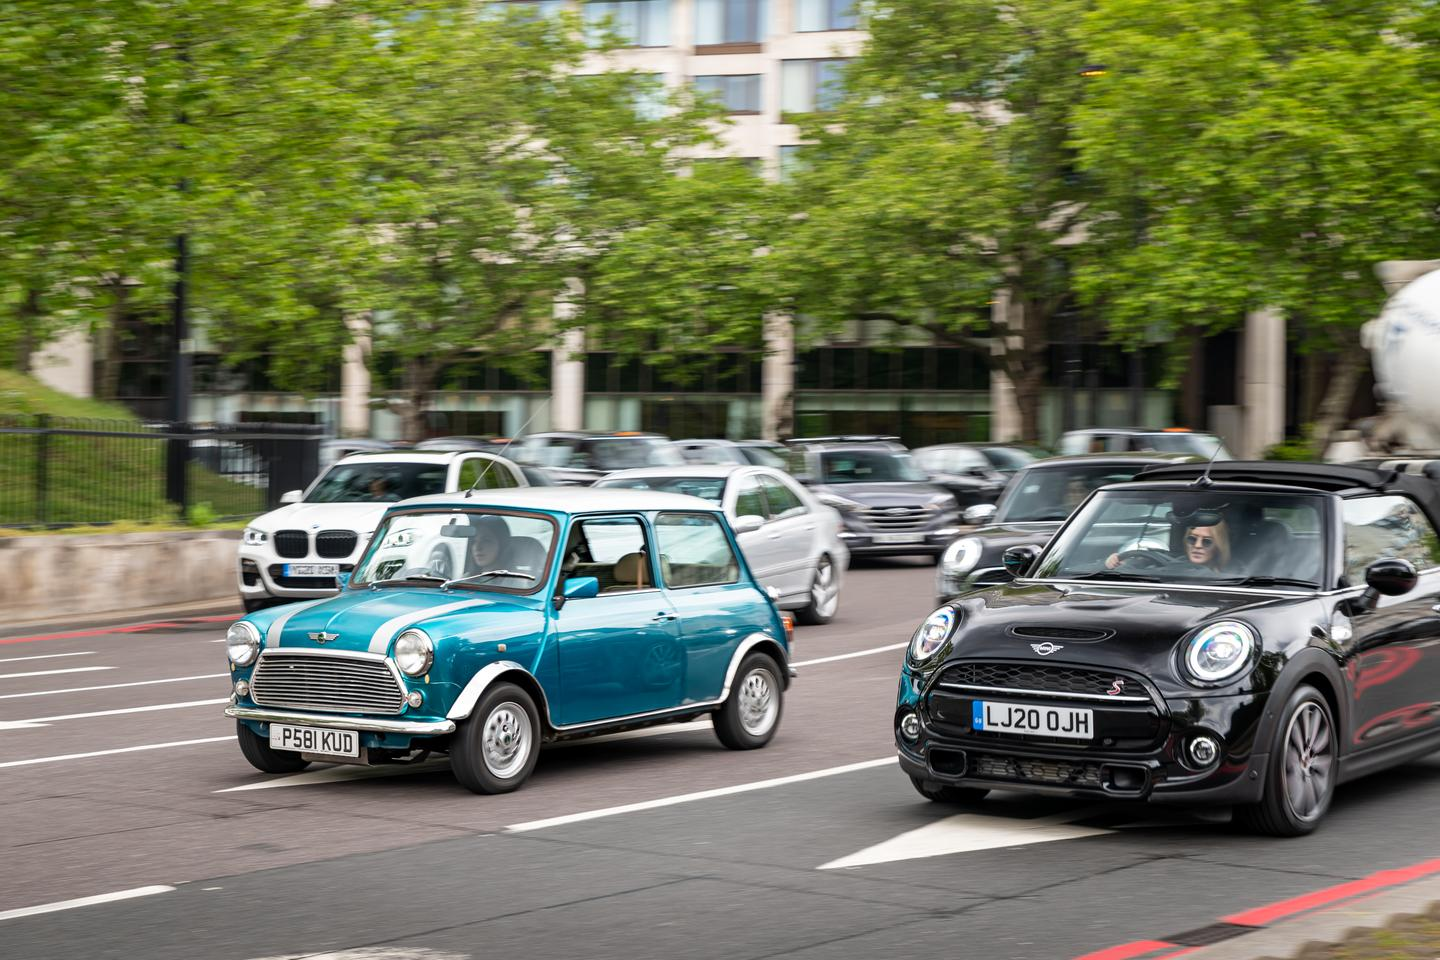 London Electric Cars will convert a classic Mini (left) to all-electric drive for £25,000